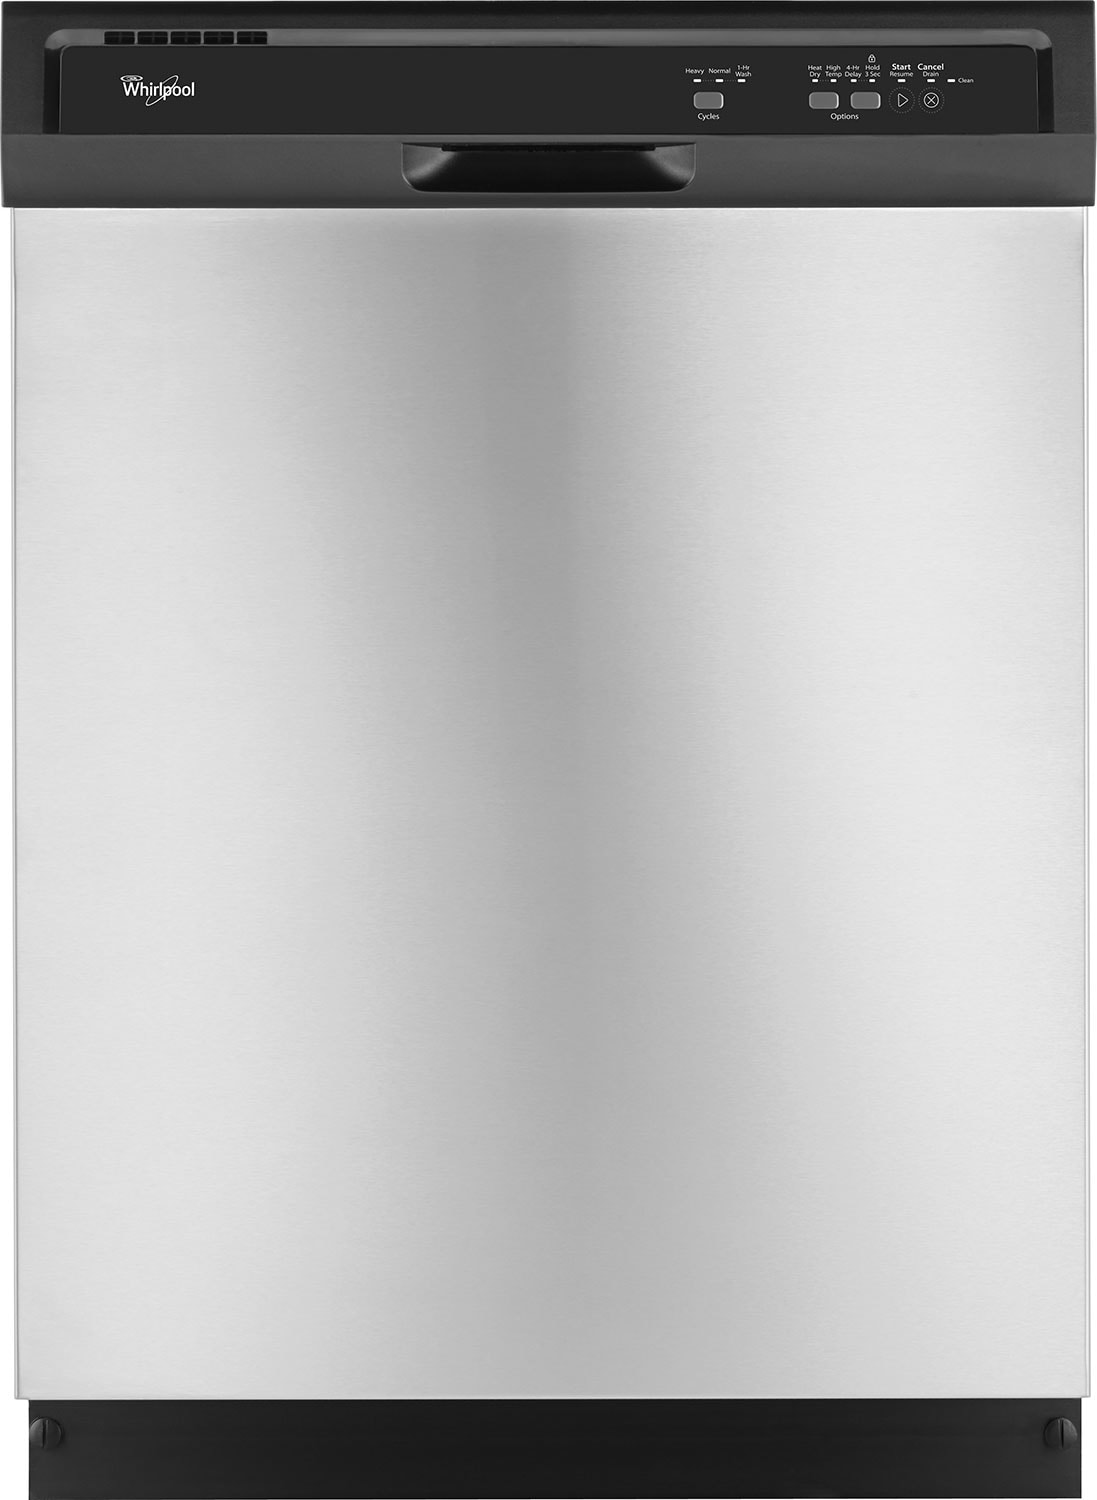 Whirlpool® Built-In Dishwasher – Stainless Steel